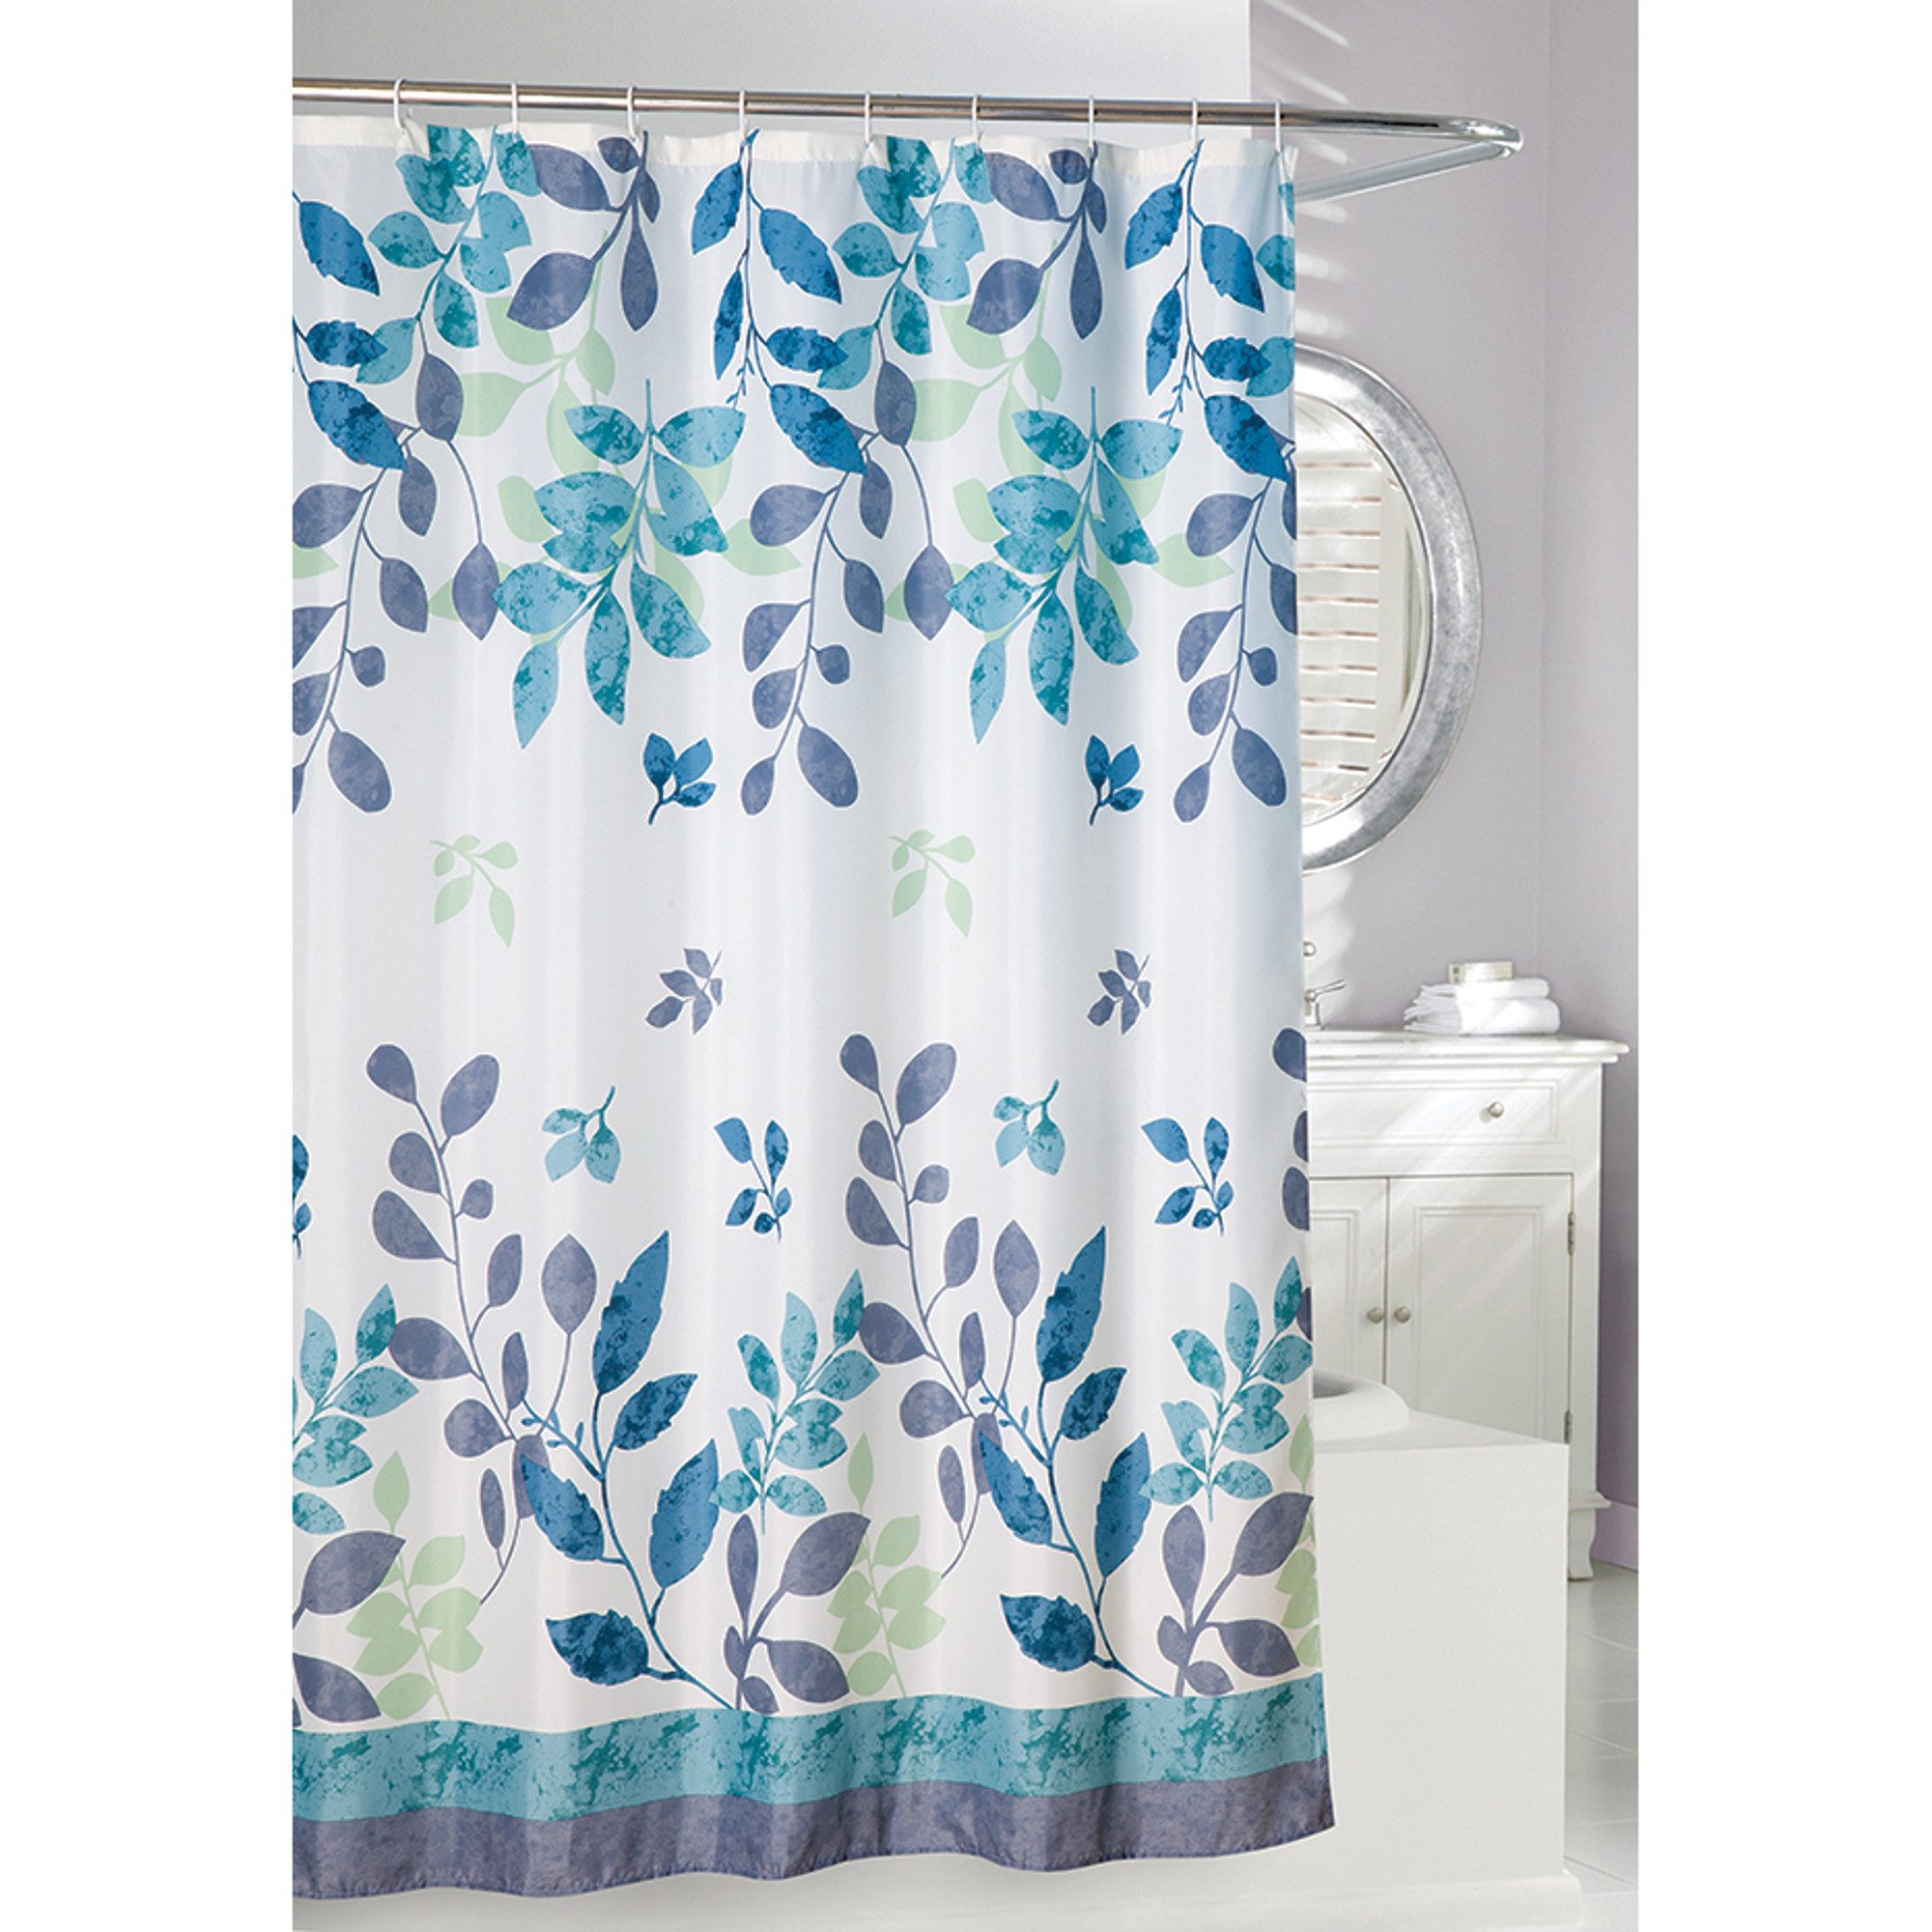 Vines And Leaves Fabric Shower Curtain Patience